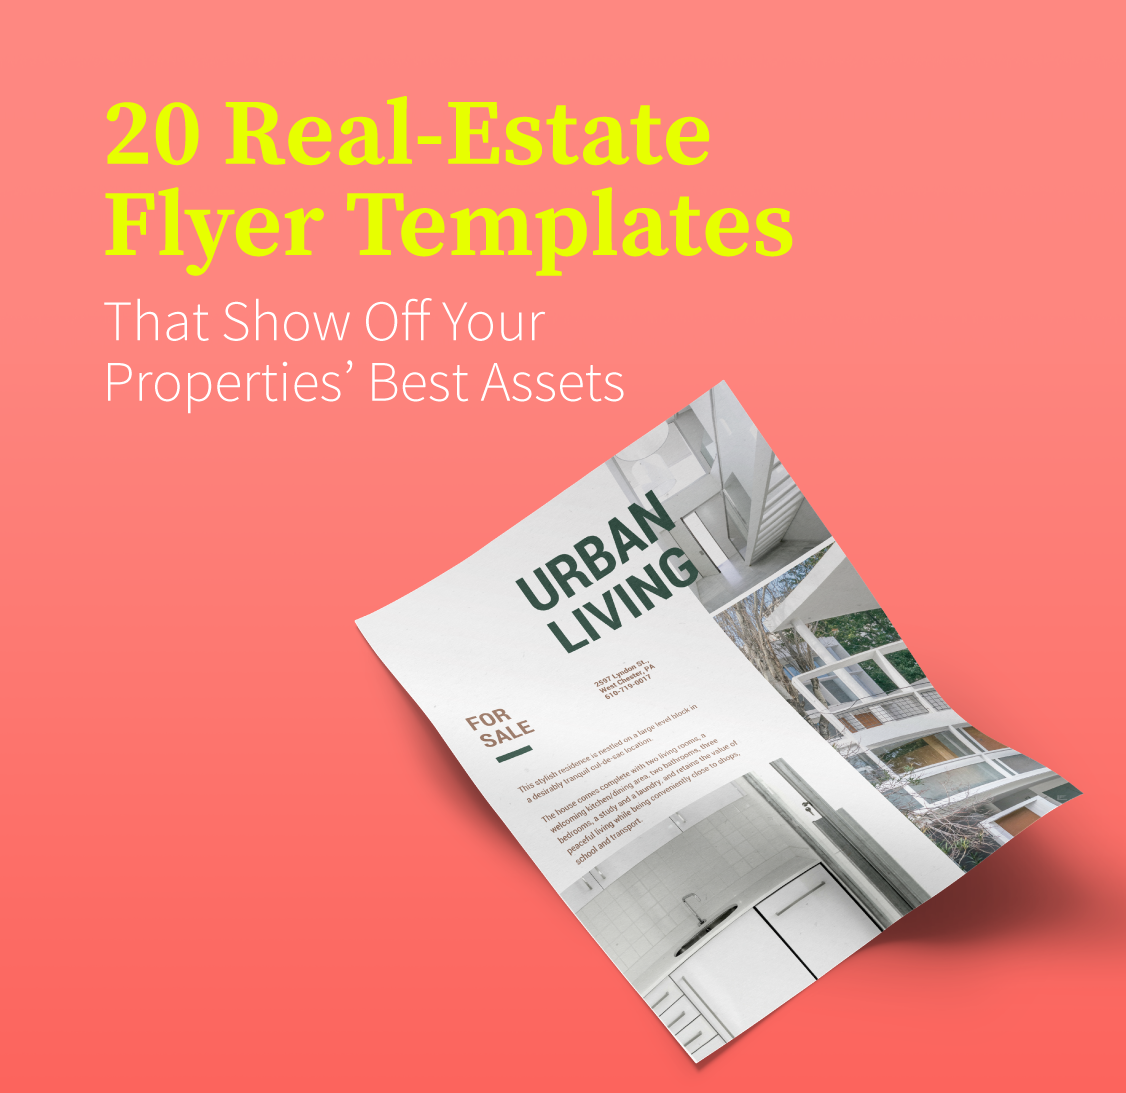 real-estate-flyer-thumb